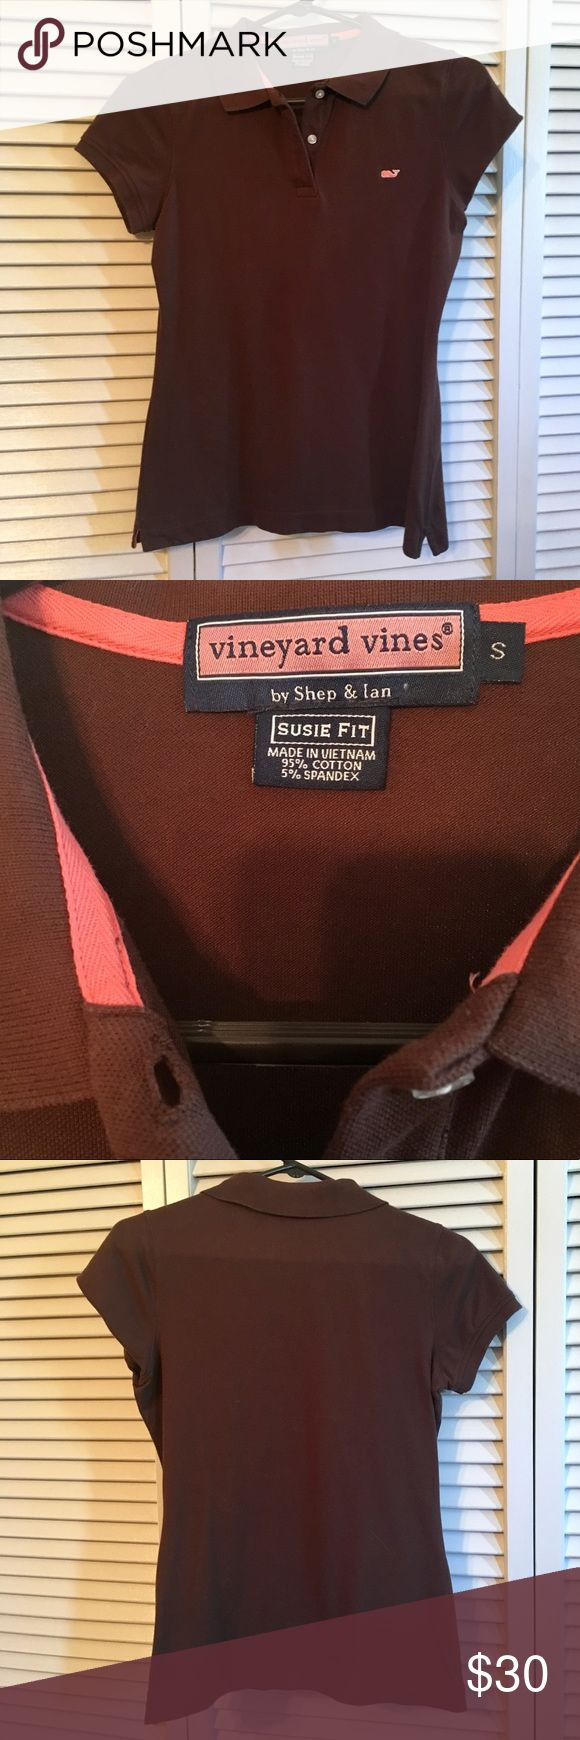 Vineyard Vines Susie Fit Classic Polo Brown Classic Vineyard Vines Susie Fit woman's polo in a beautiful and flattering natural brown with salmon colored lining. Comfortable and stylish! . Excellent pre loved condition! Feminine fit. Vineyard Vines Tops